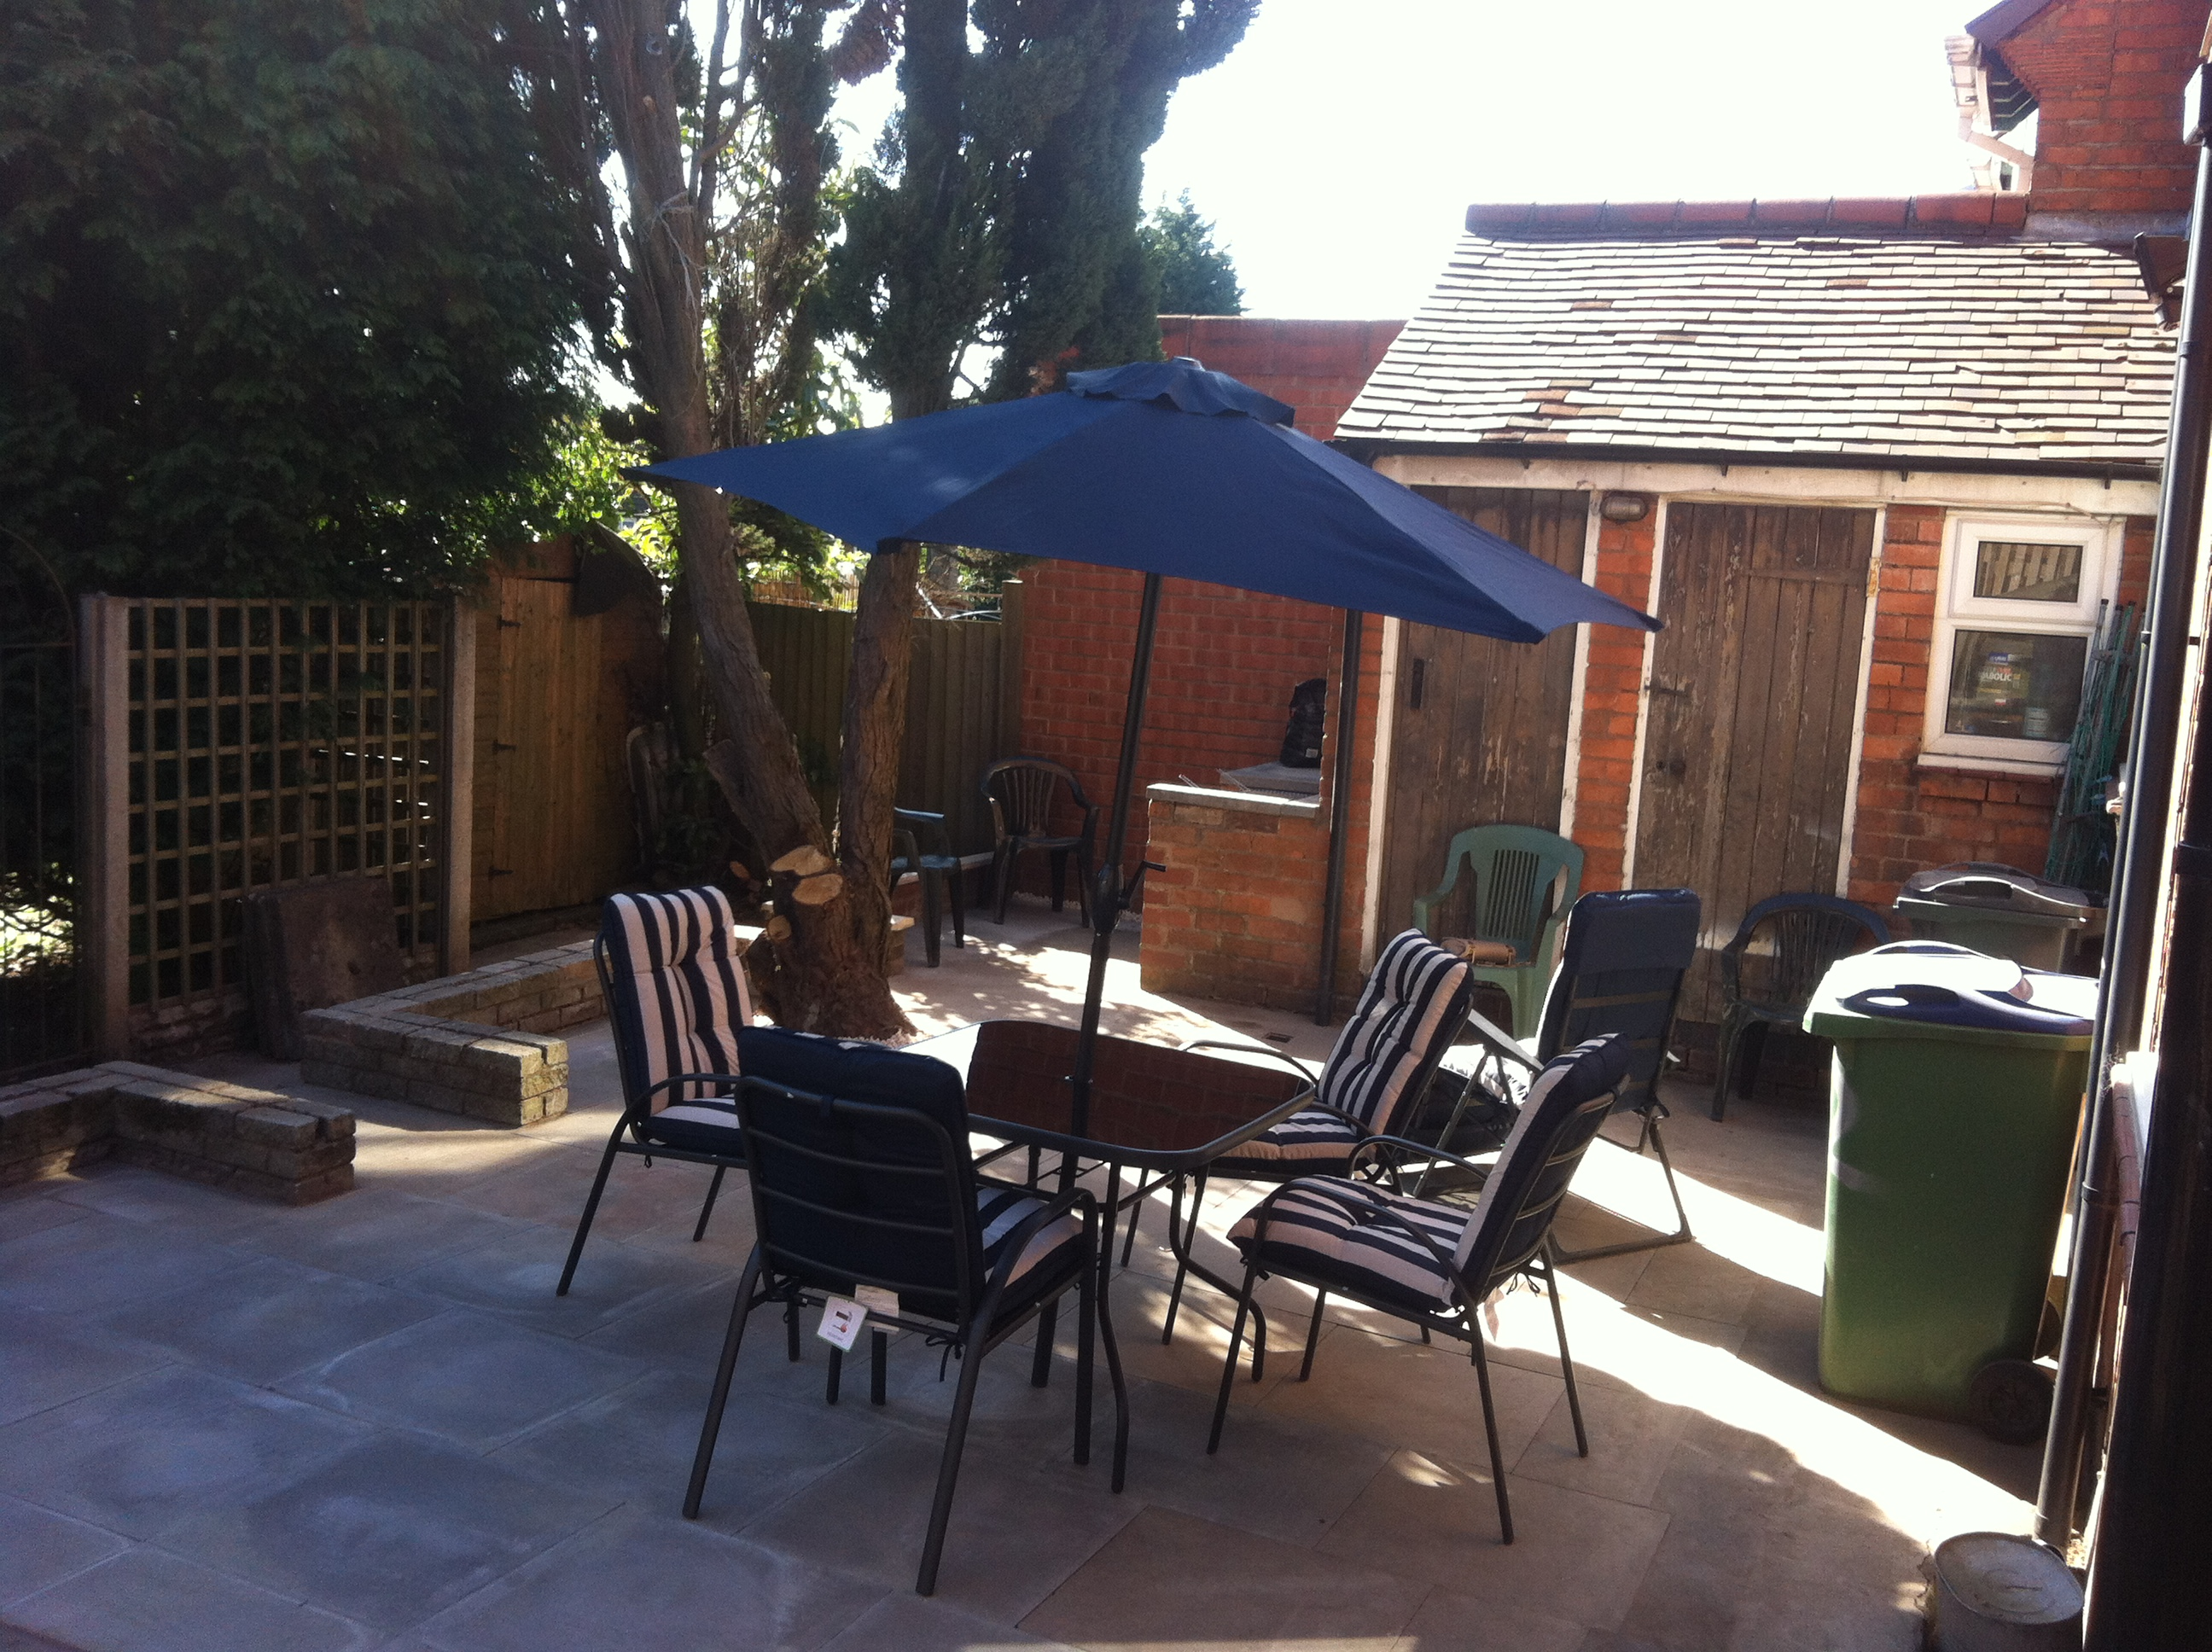 Outdoor table and chairs assembled